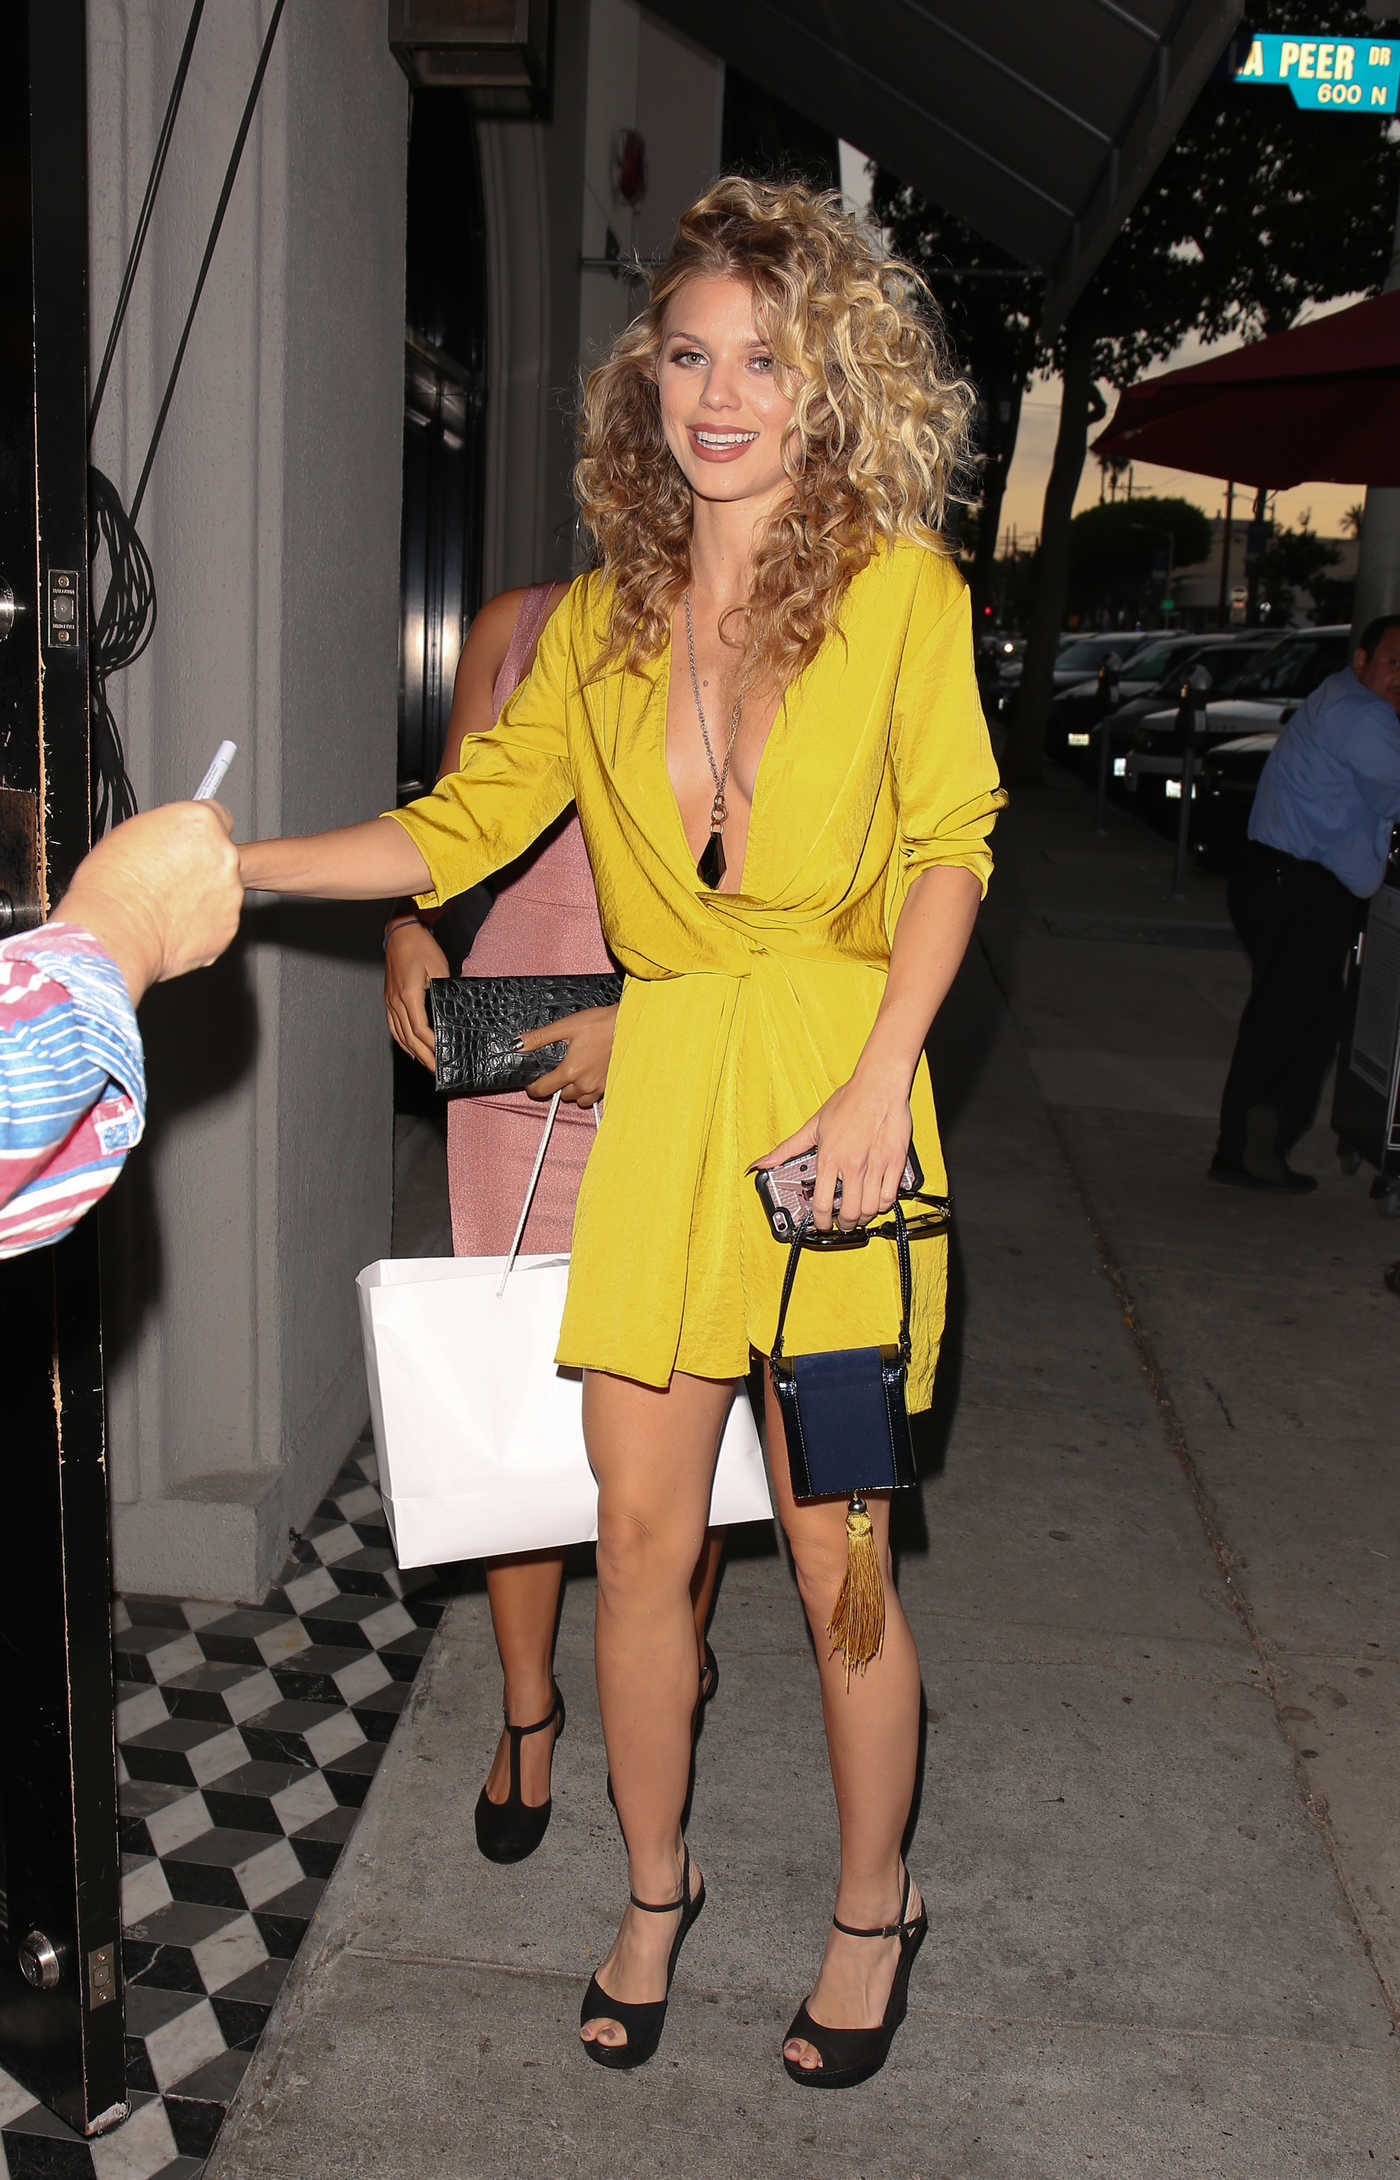 AnnaLynne McCord Arrives For Dinner at Craig's Restaurant in West Hollywood 08/06/2016